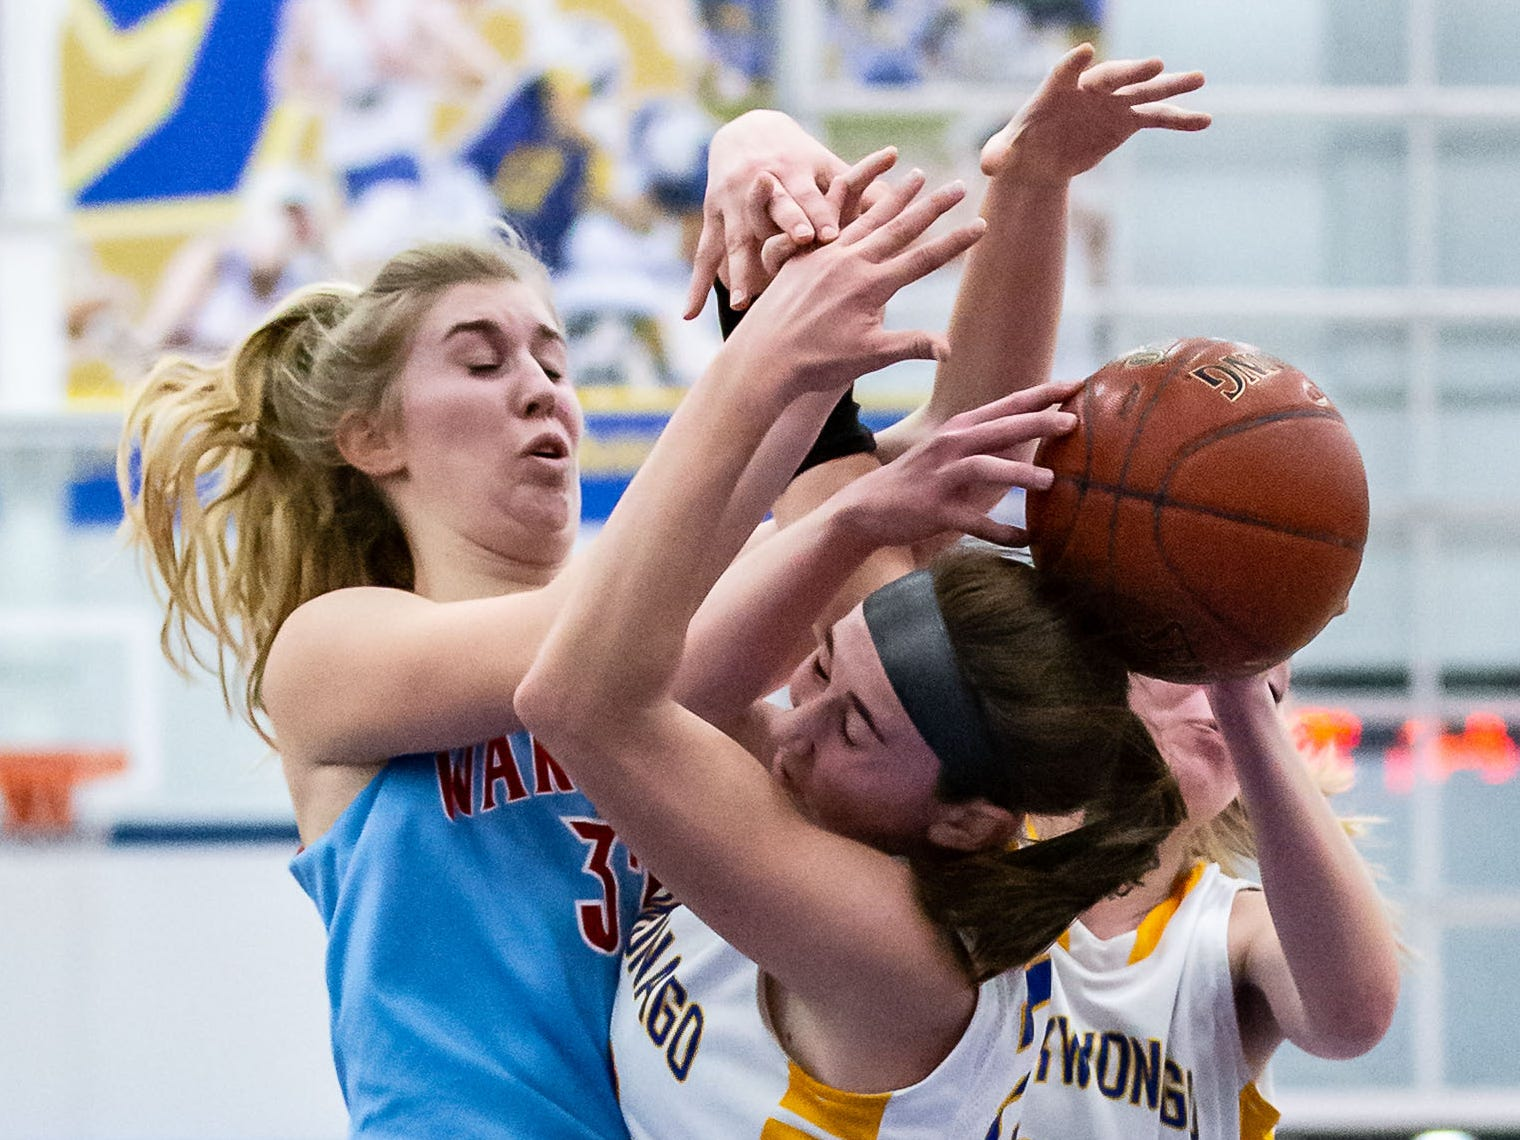 Arrowhead's Lauren With (left) battles for a rebound with Mukwonago's Angie Cera (22) and Dru Henning (33) during the game at Mukwonago on Friday, Jan. 4, 2019.